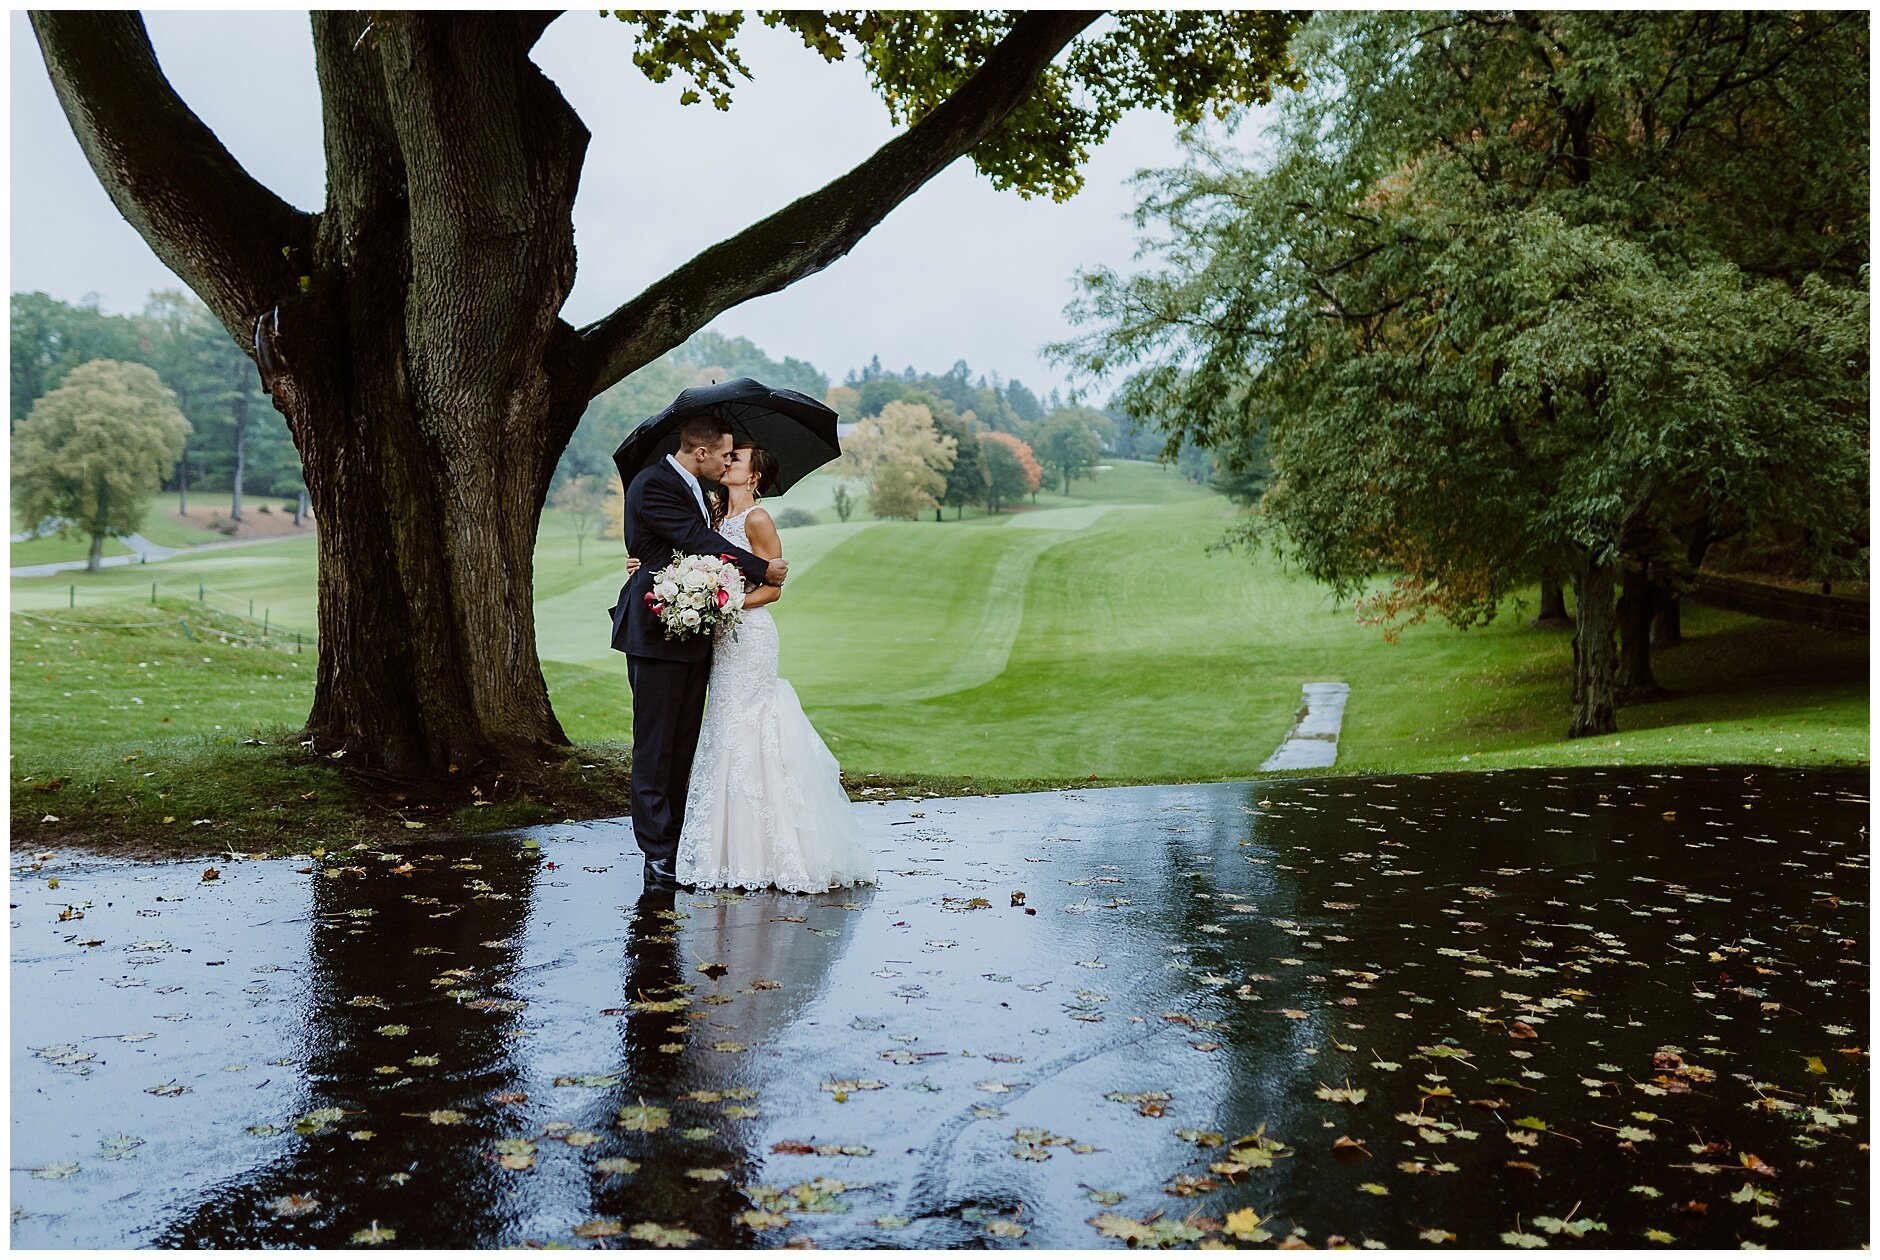 Rainy day wedding portraits Rochester NY Photographer